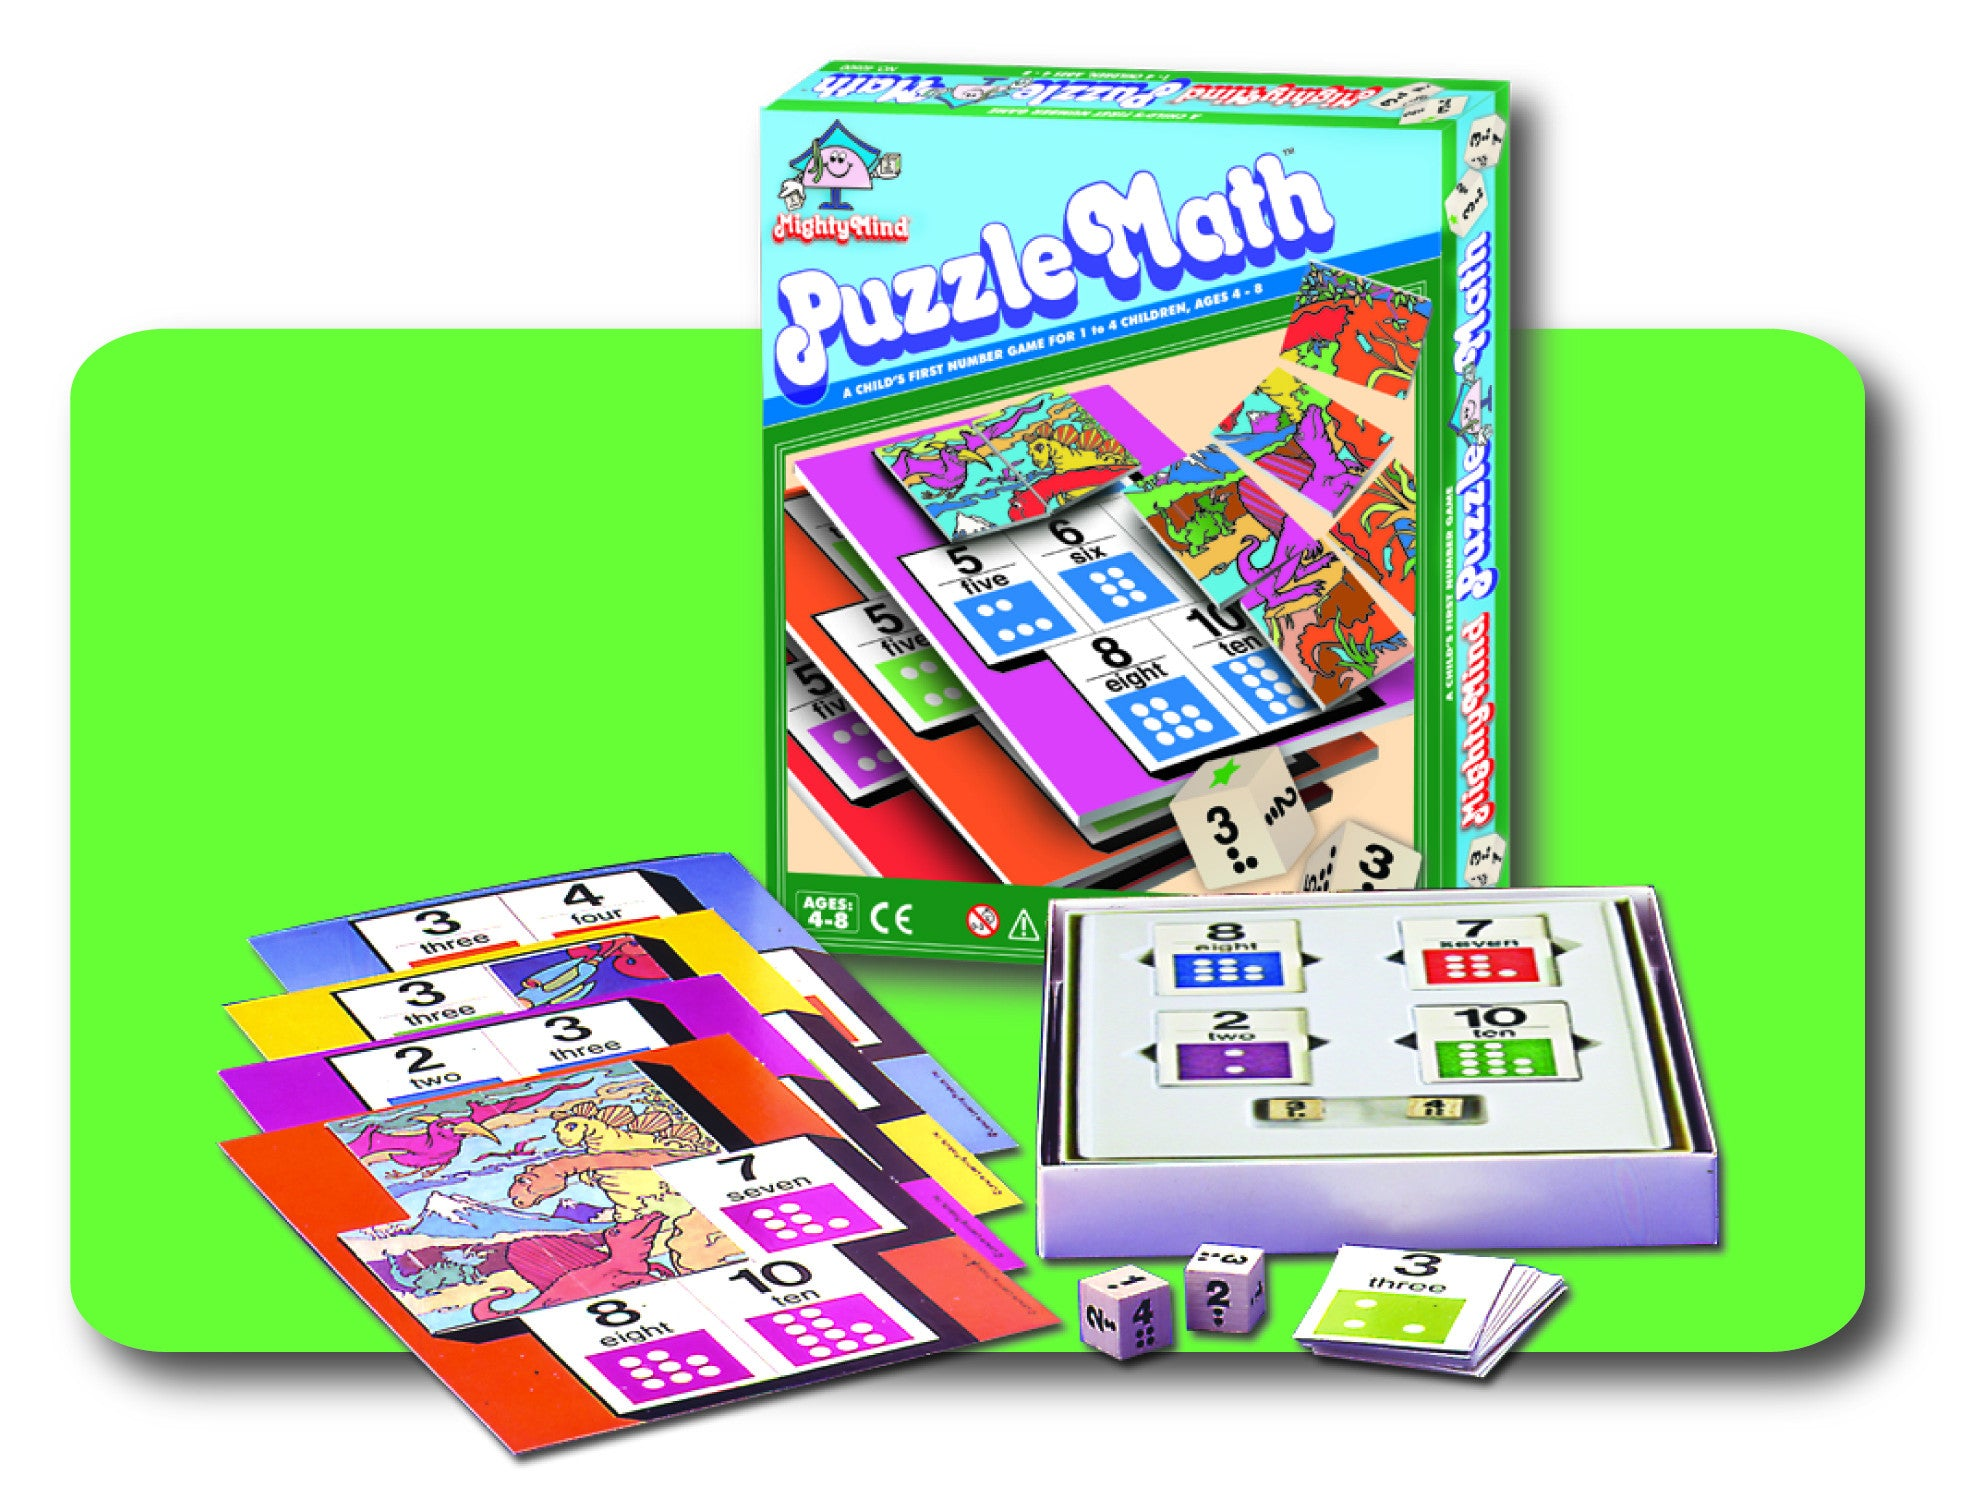 Leisure Learning Products MightyMind Puzzle Math 40500